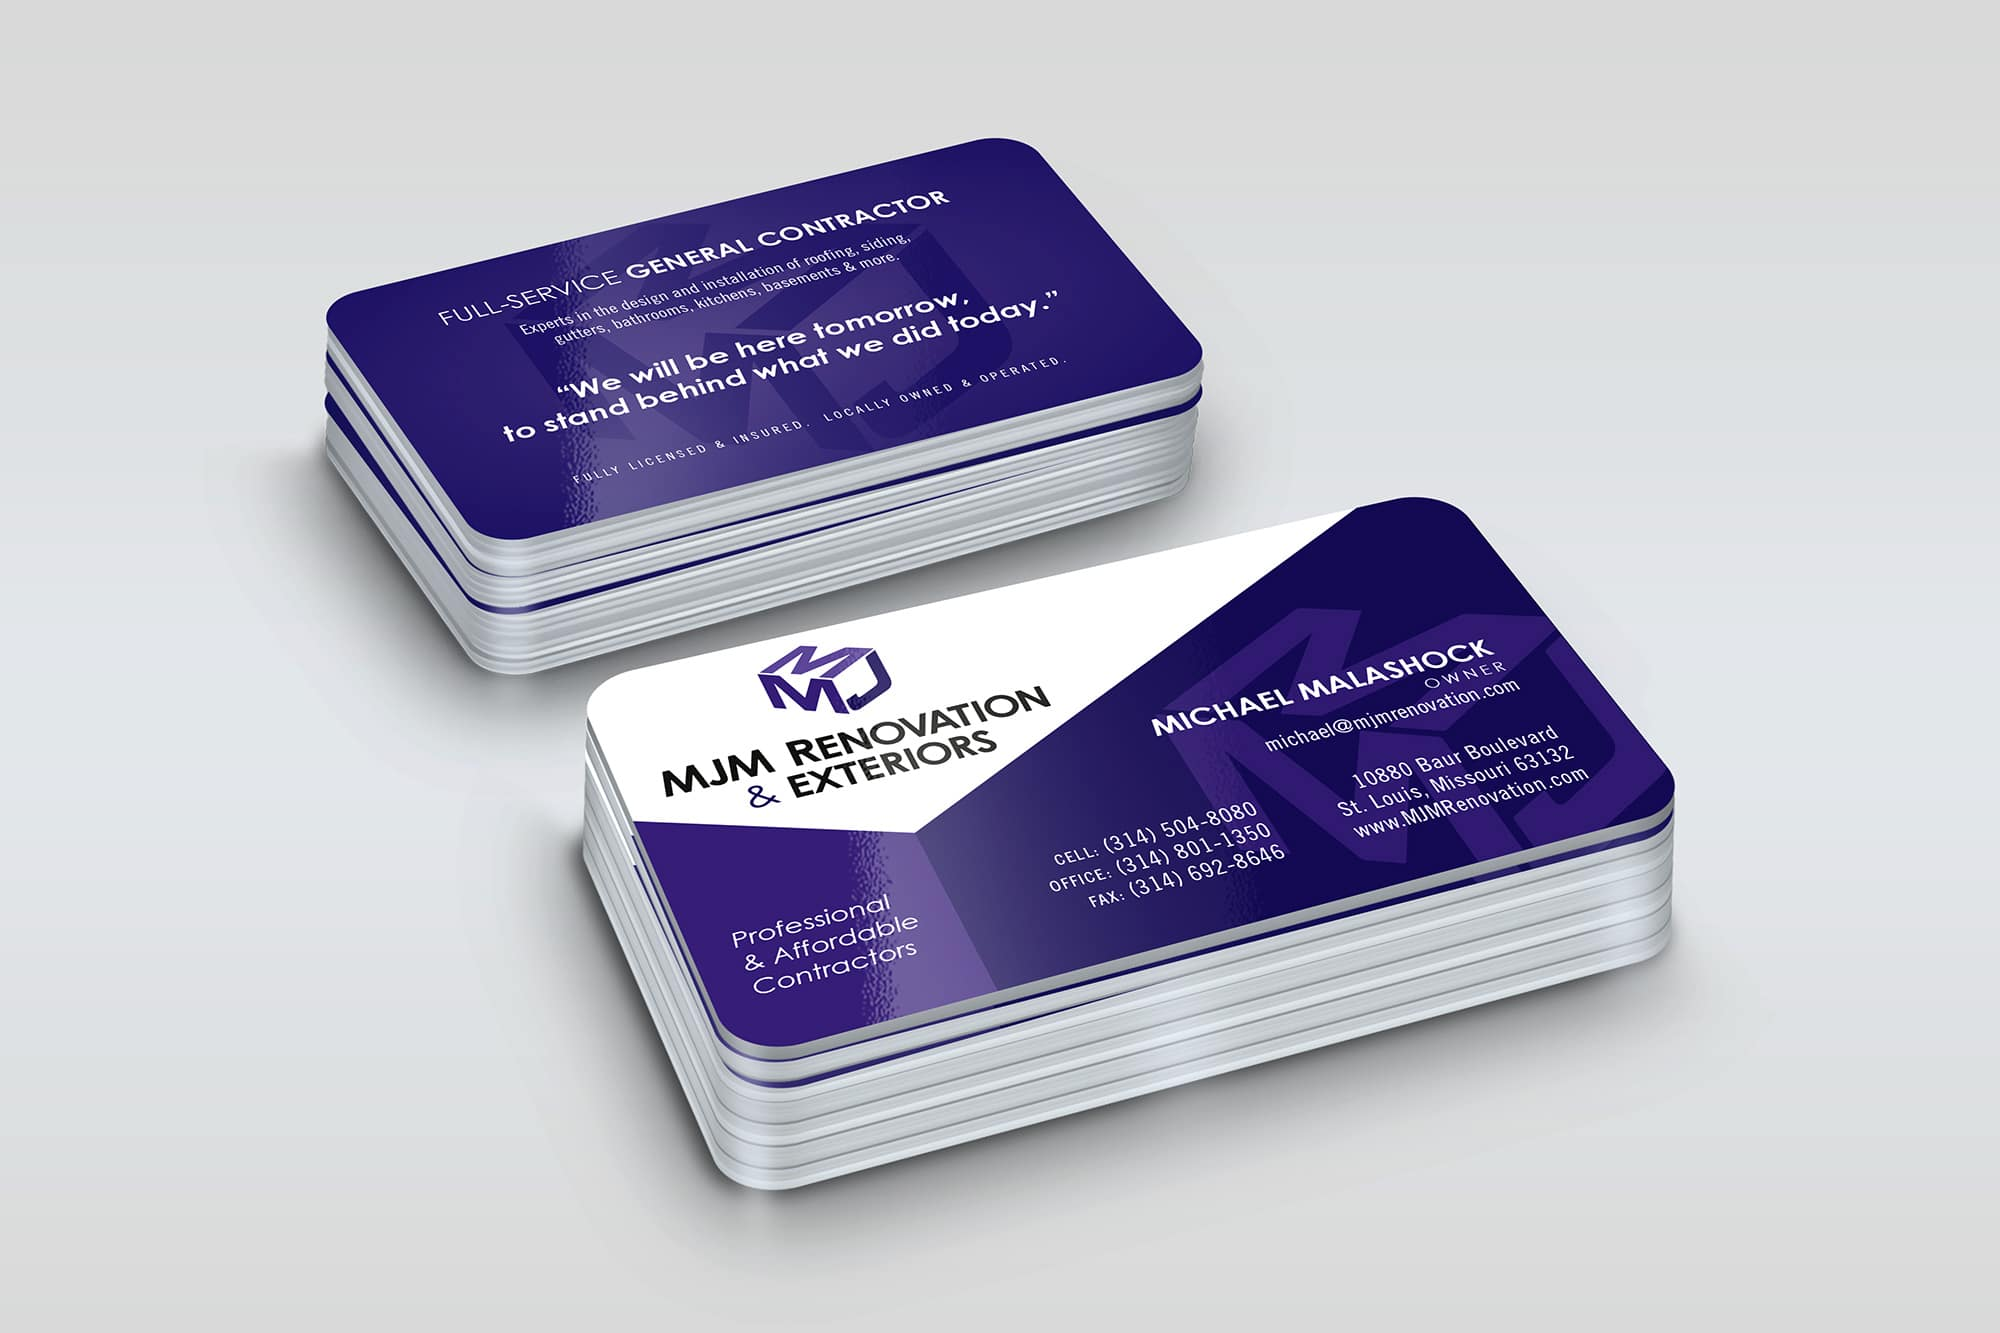 MJM Business Card design